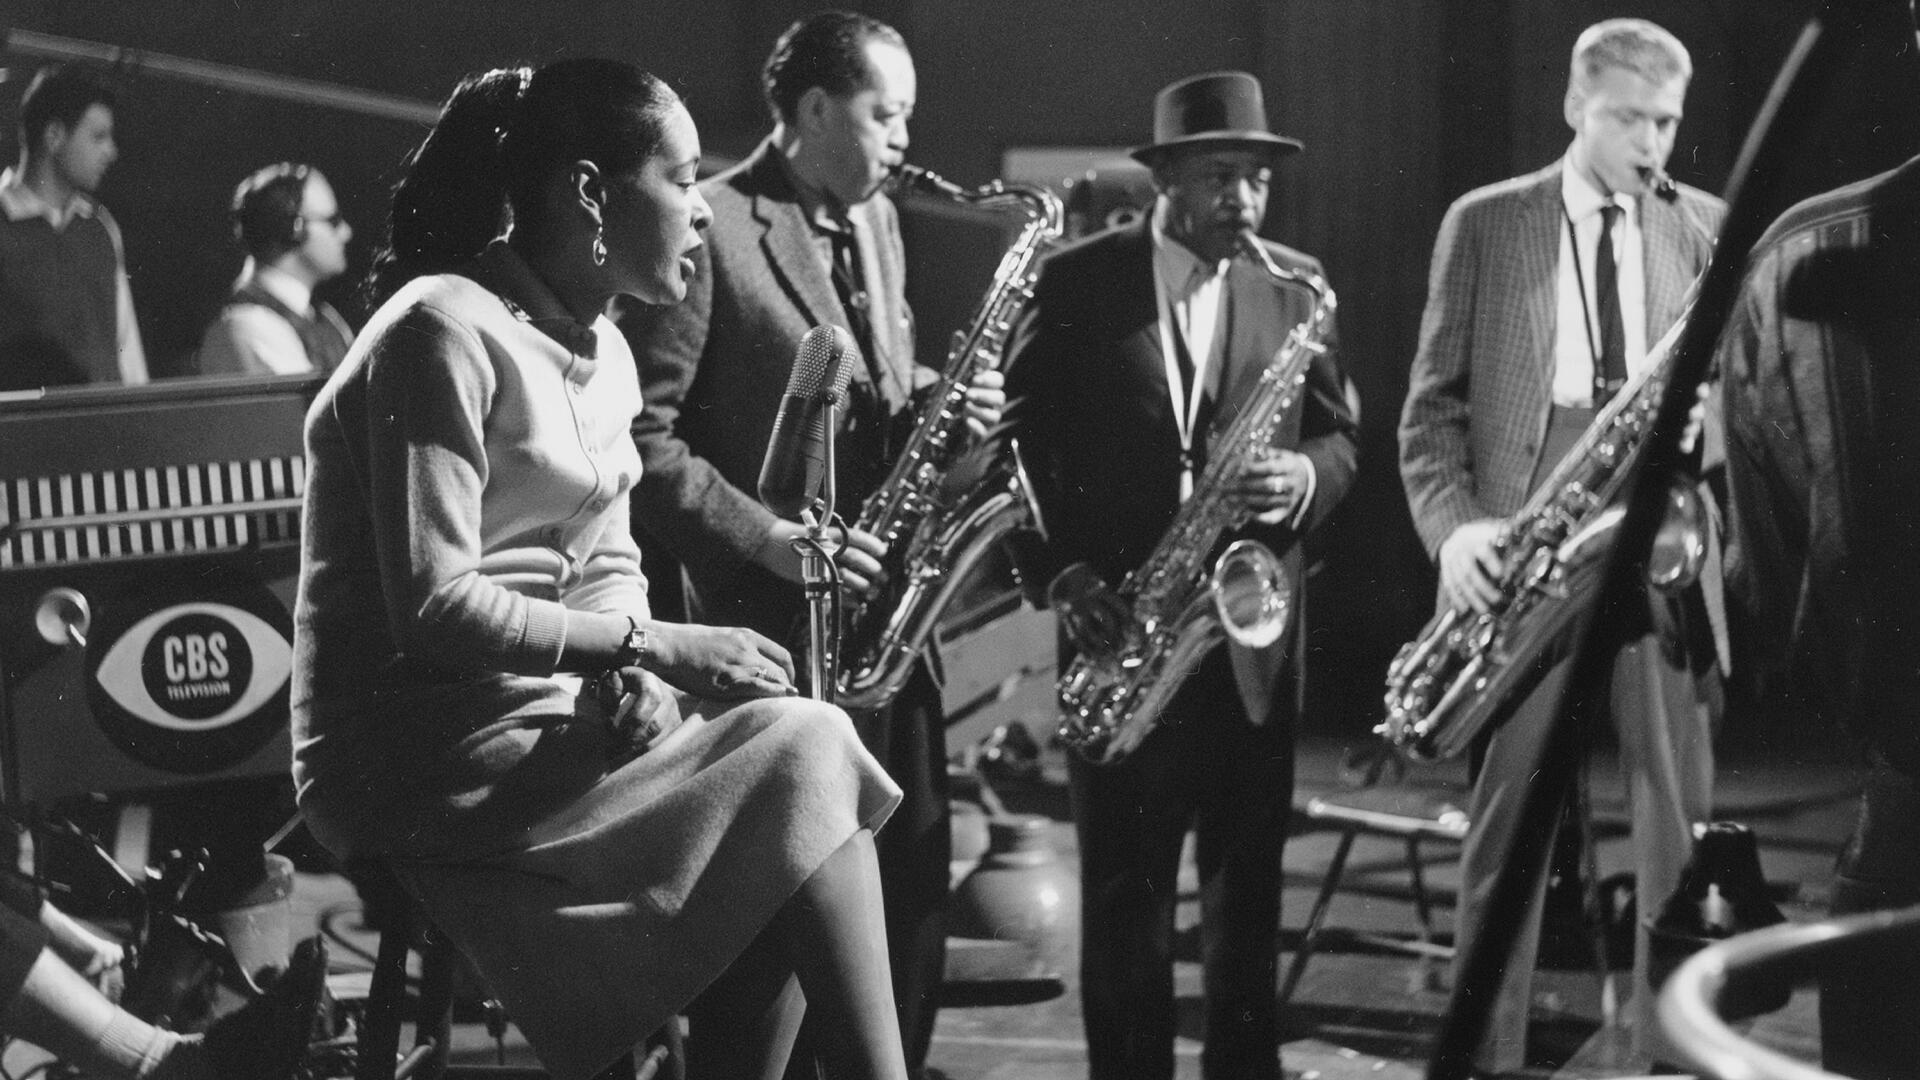 La chanteuse Billie Holiday accompagnée des musiciens : Lester Young (à gauche), Coleman Hawkins et Gerry Mulligan, pendant l'émission de télévision sur CBS «The sound of jazz», le 8 décembre 1957 à New York.